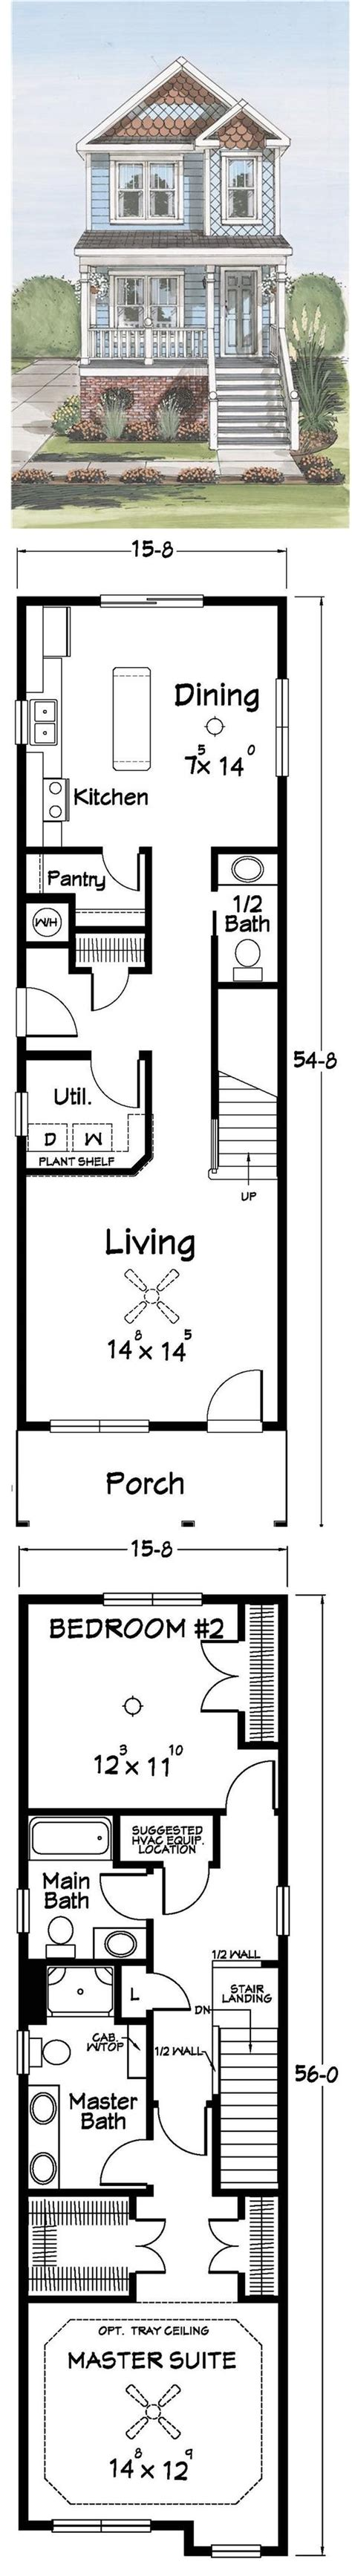 City Lot House Plans by House Plans For Narrow City Lots 28 Images Narrow City